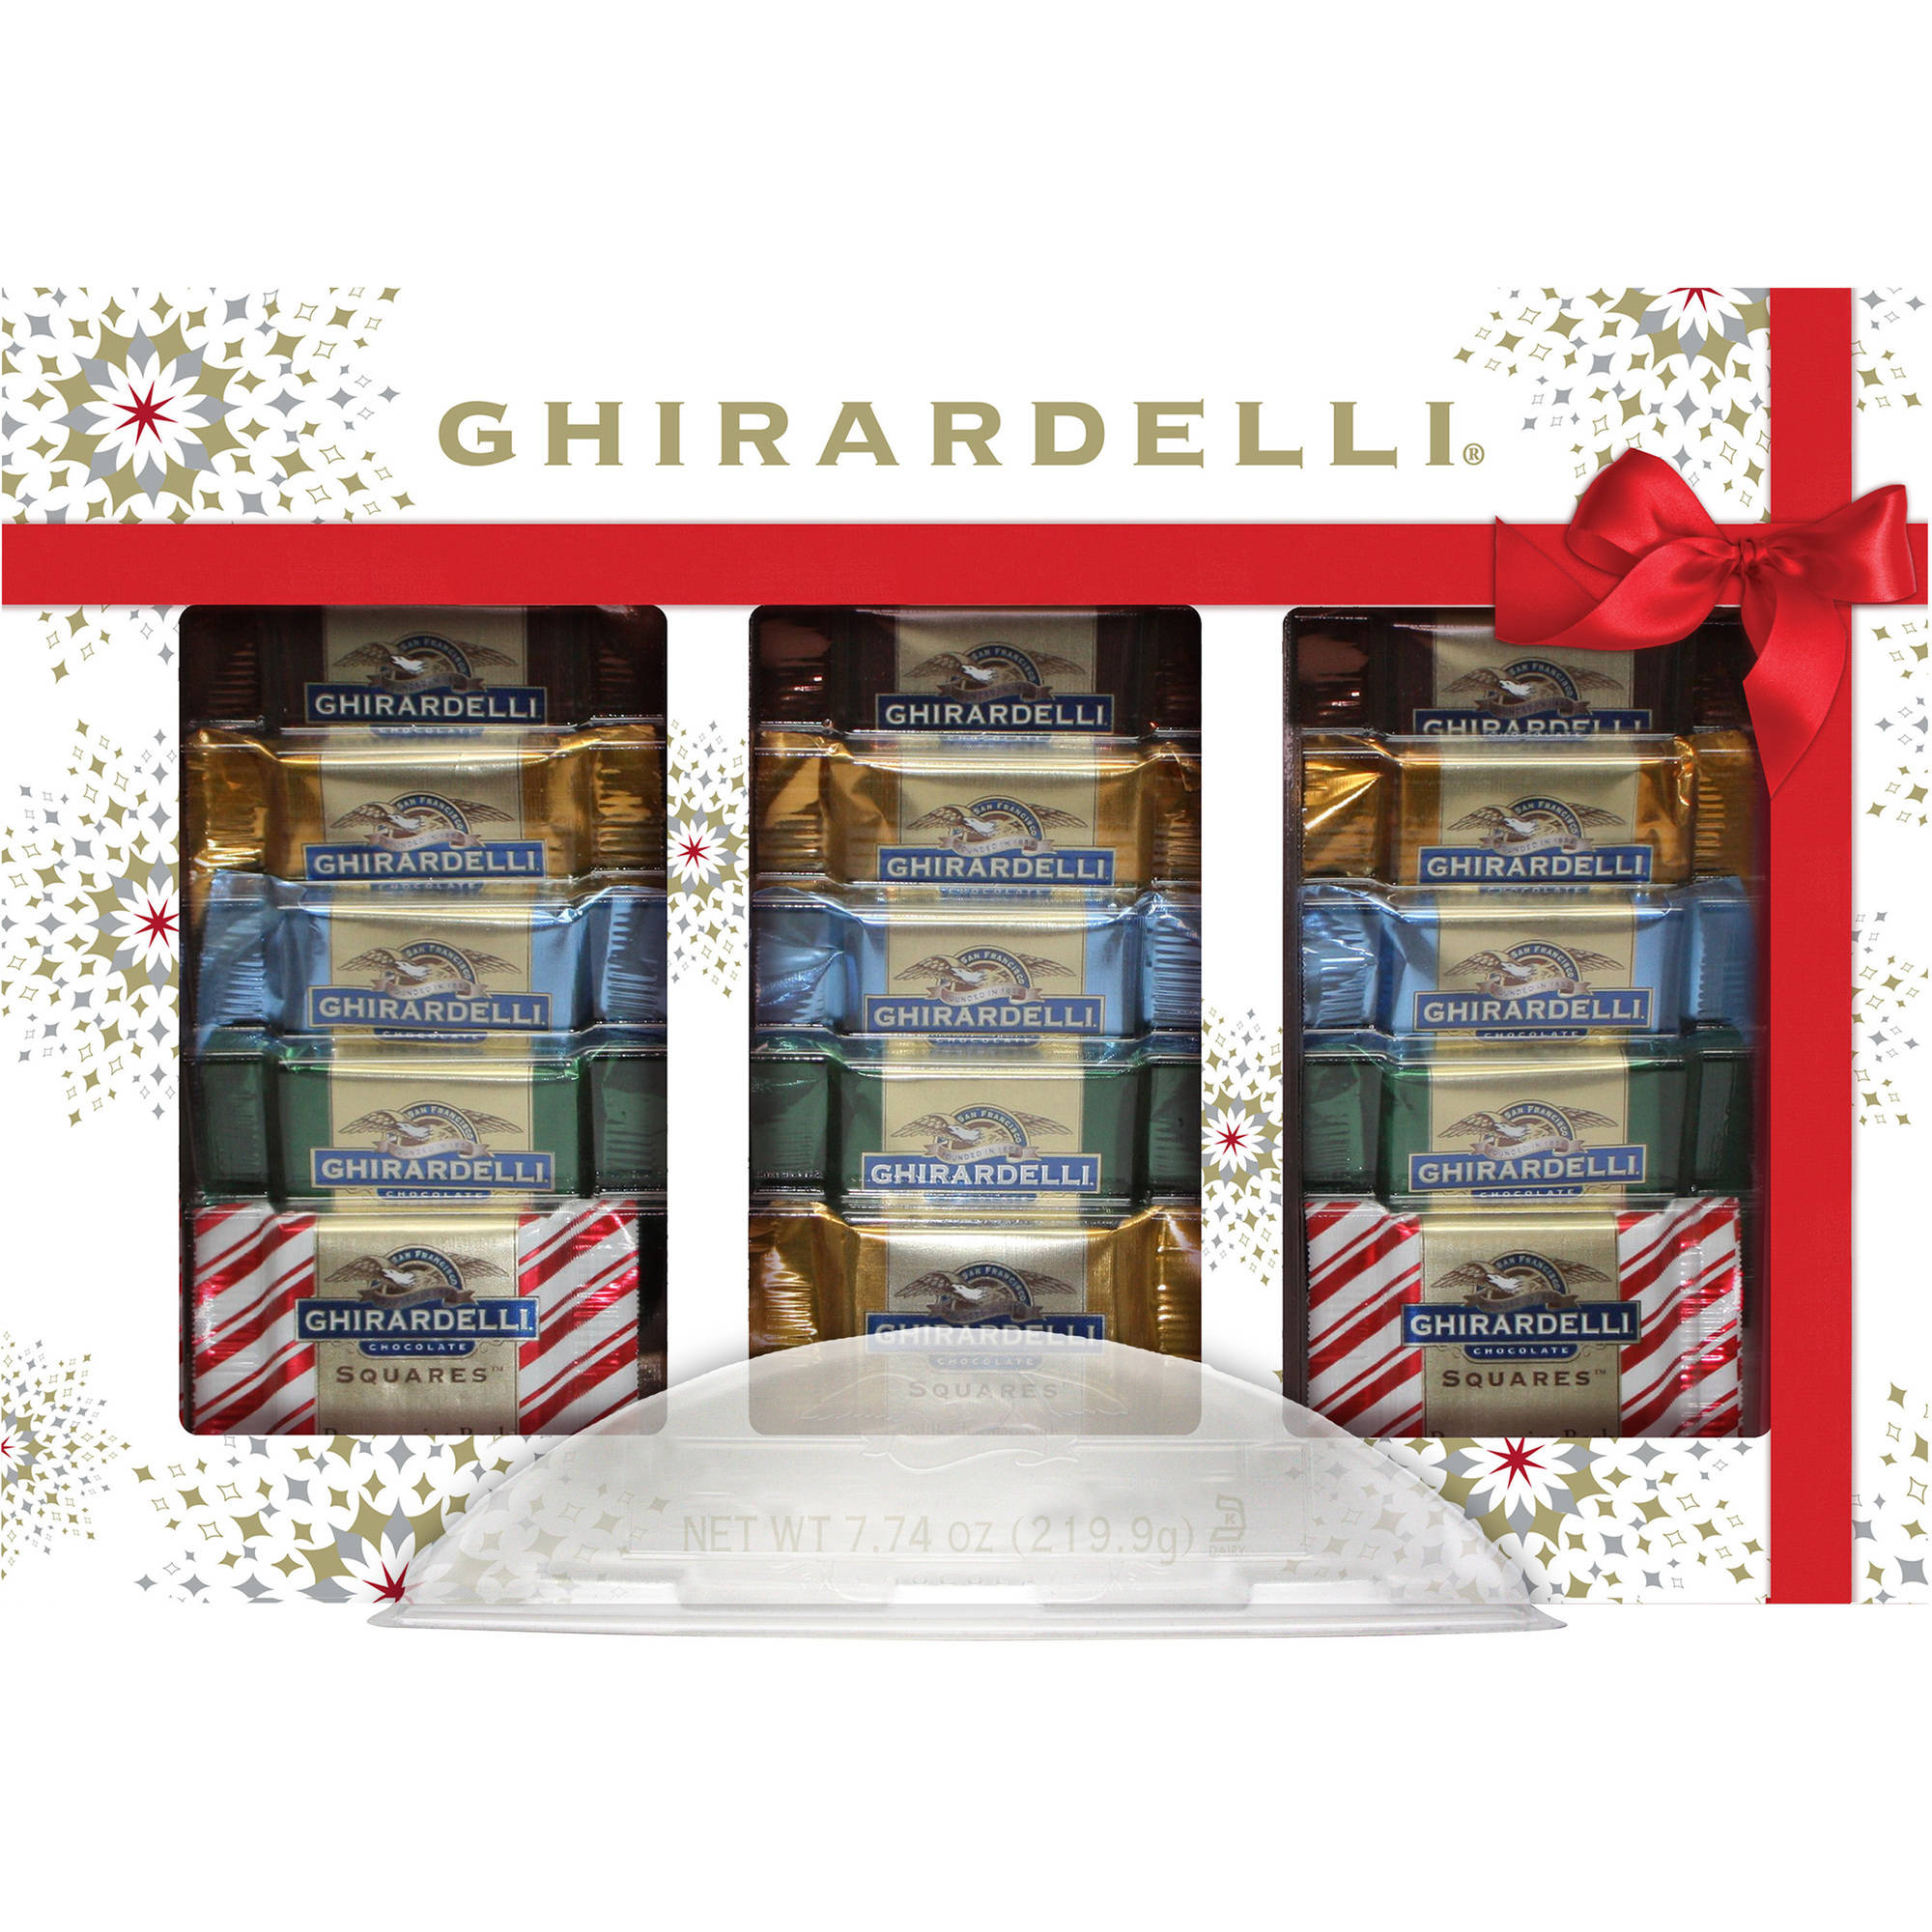 Ghirardelli Chocolate Squares Ultimate Collection Holiday Gift, 7.74 oz